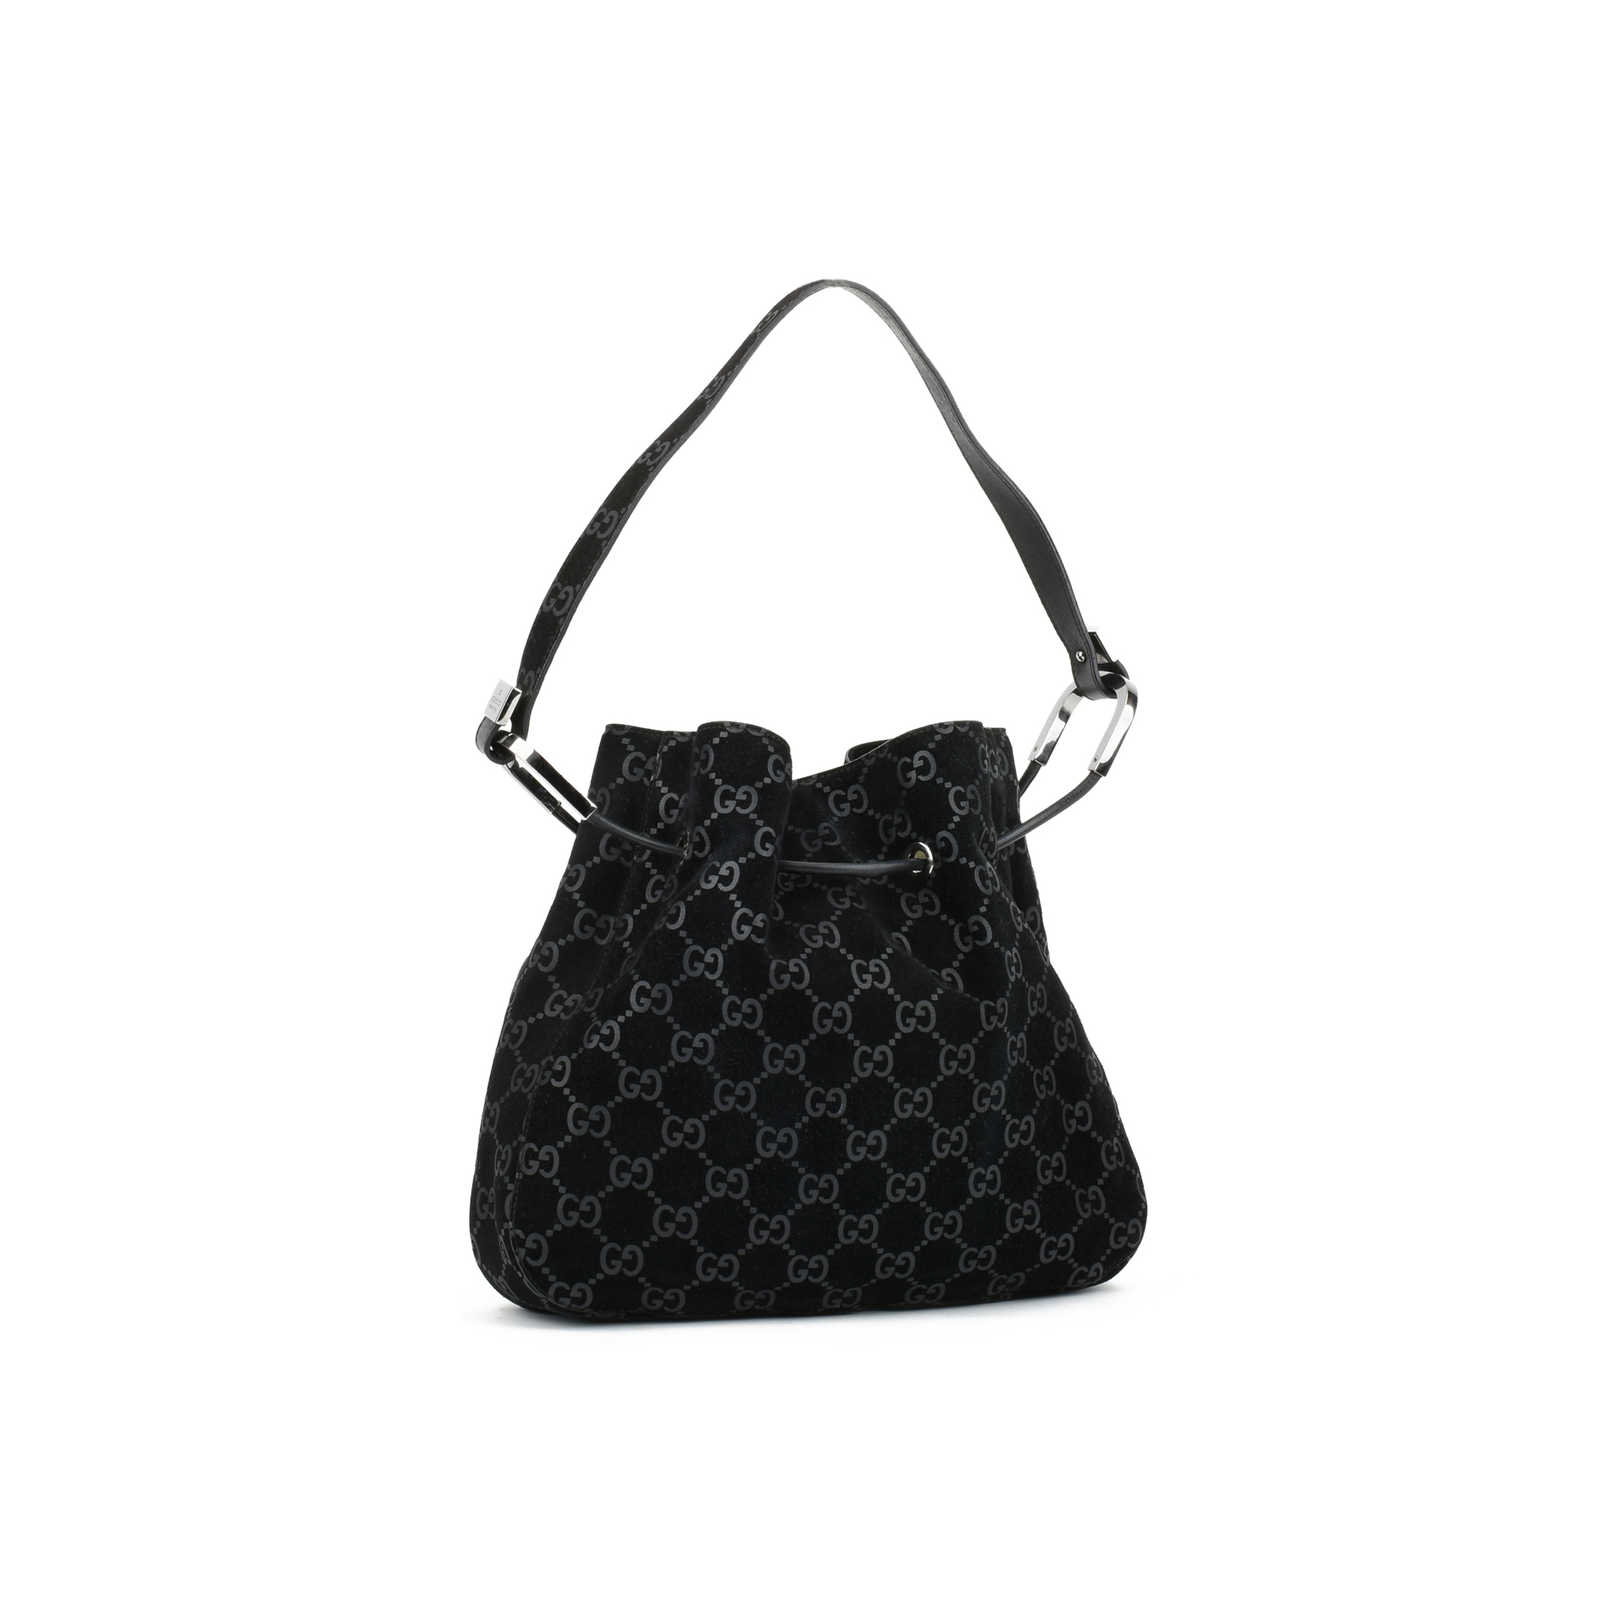 452783e818e7 ... Authentic Second Hand Gucci Drawstring Shoulder Bag (PSS-415-00026) -  Thumbnail ...